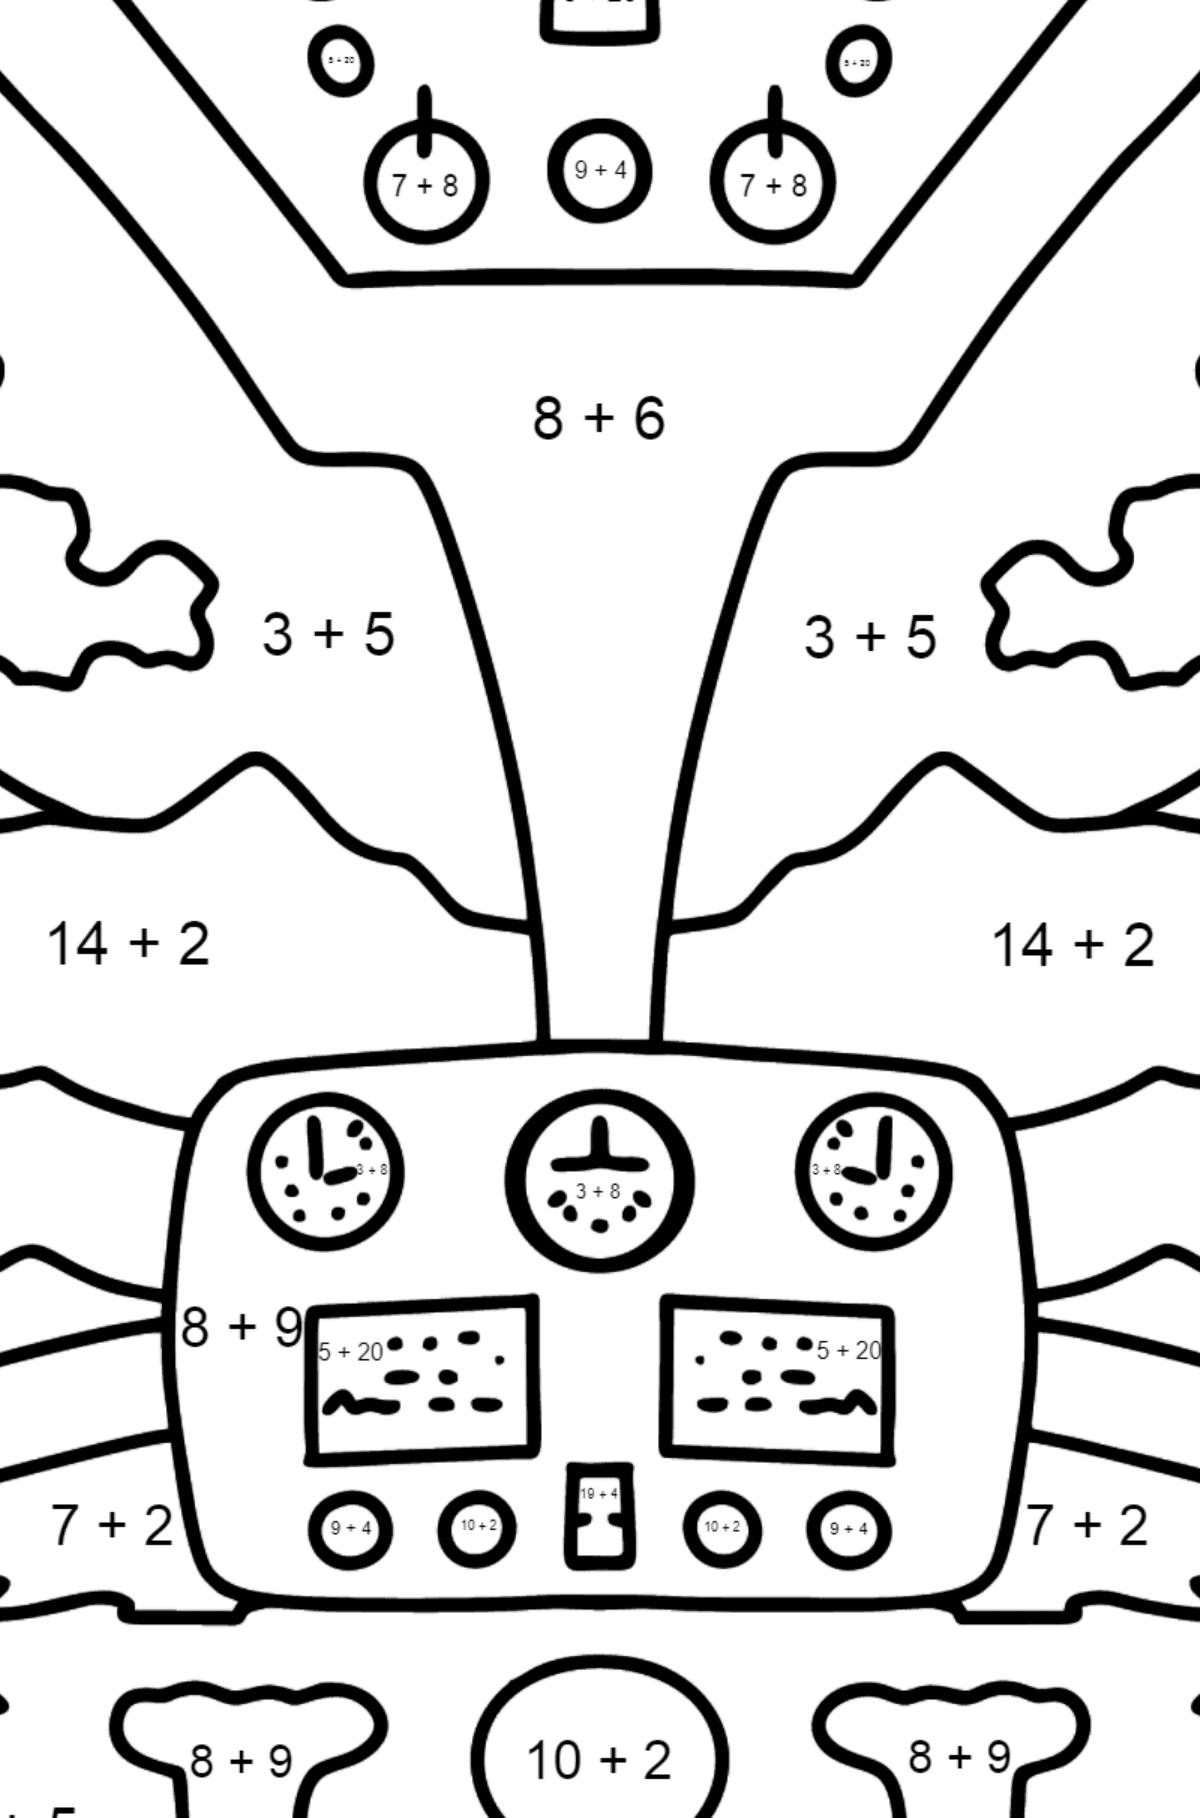 Helicopter Wheel coloring page - Math Coloring - Addition for Kids